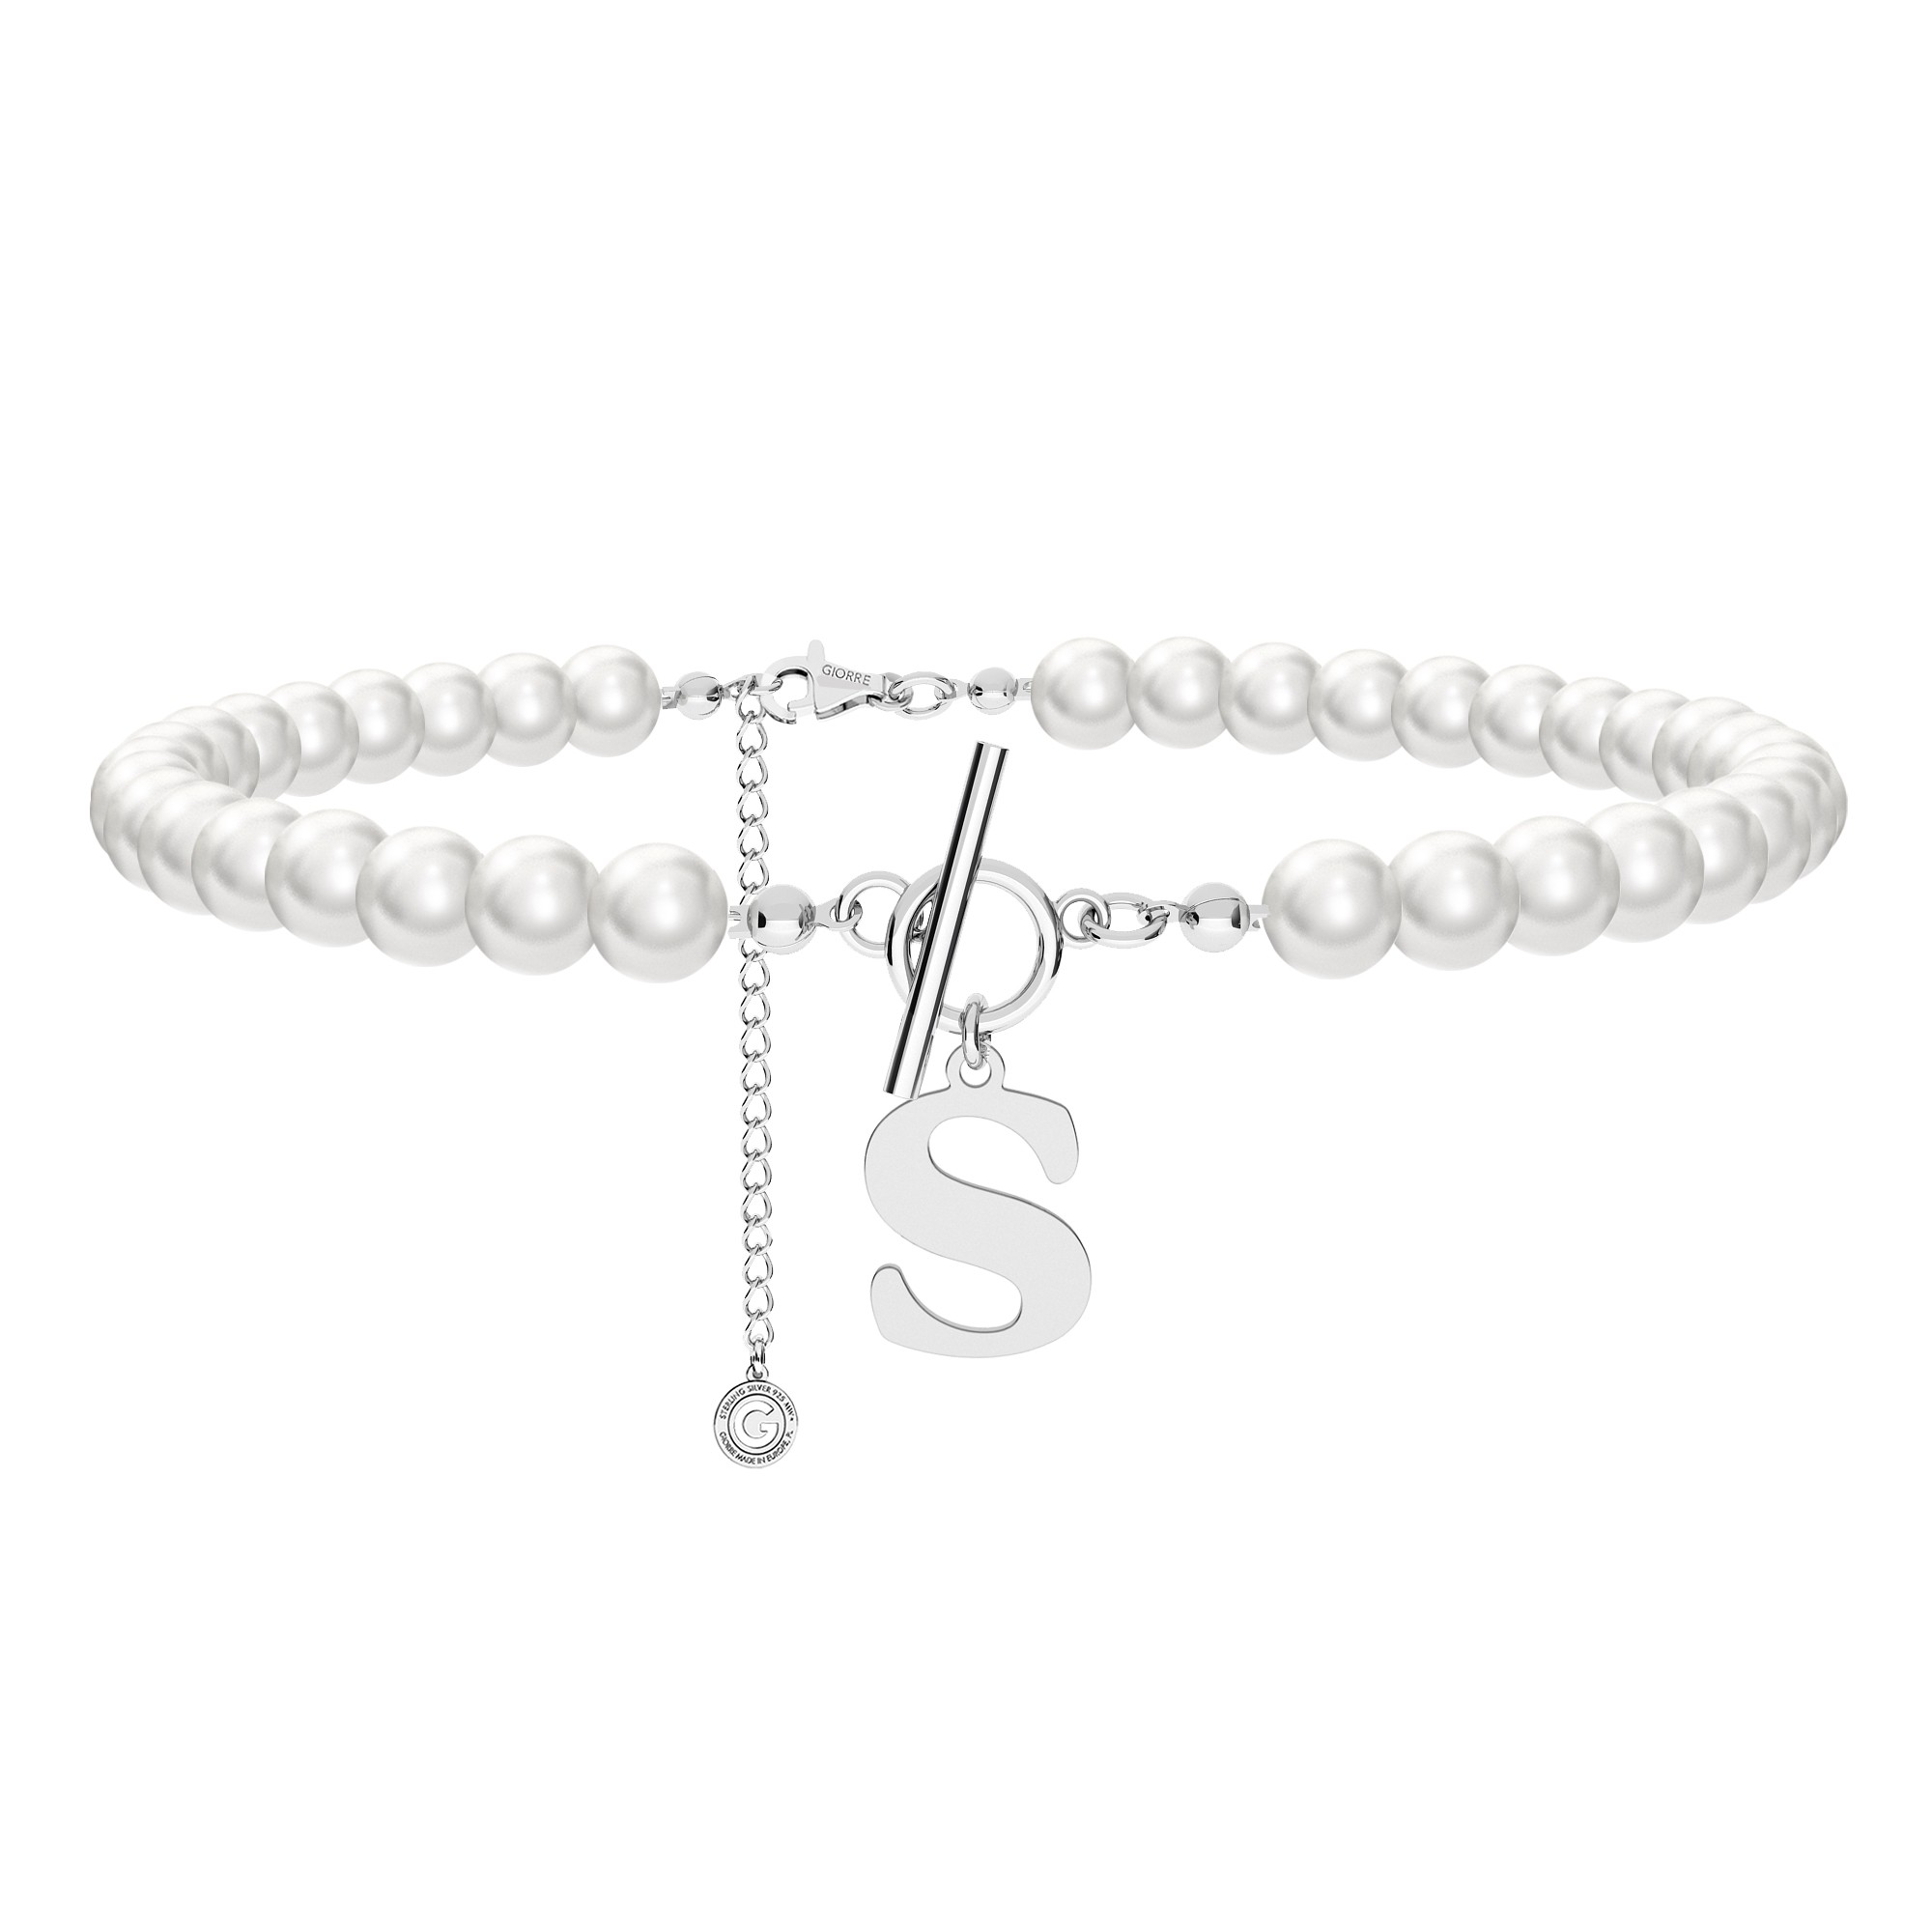 Pearls choker with coin, Silver 925